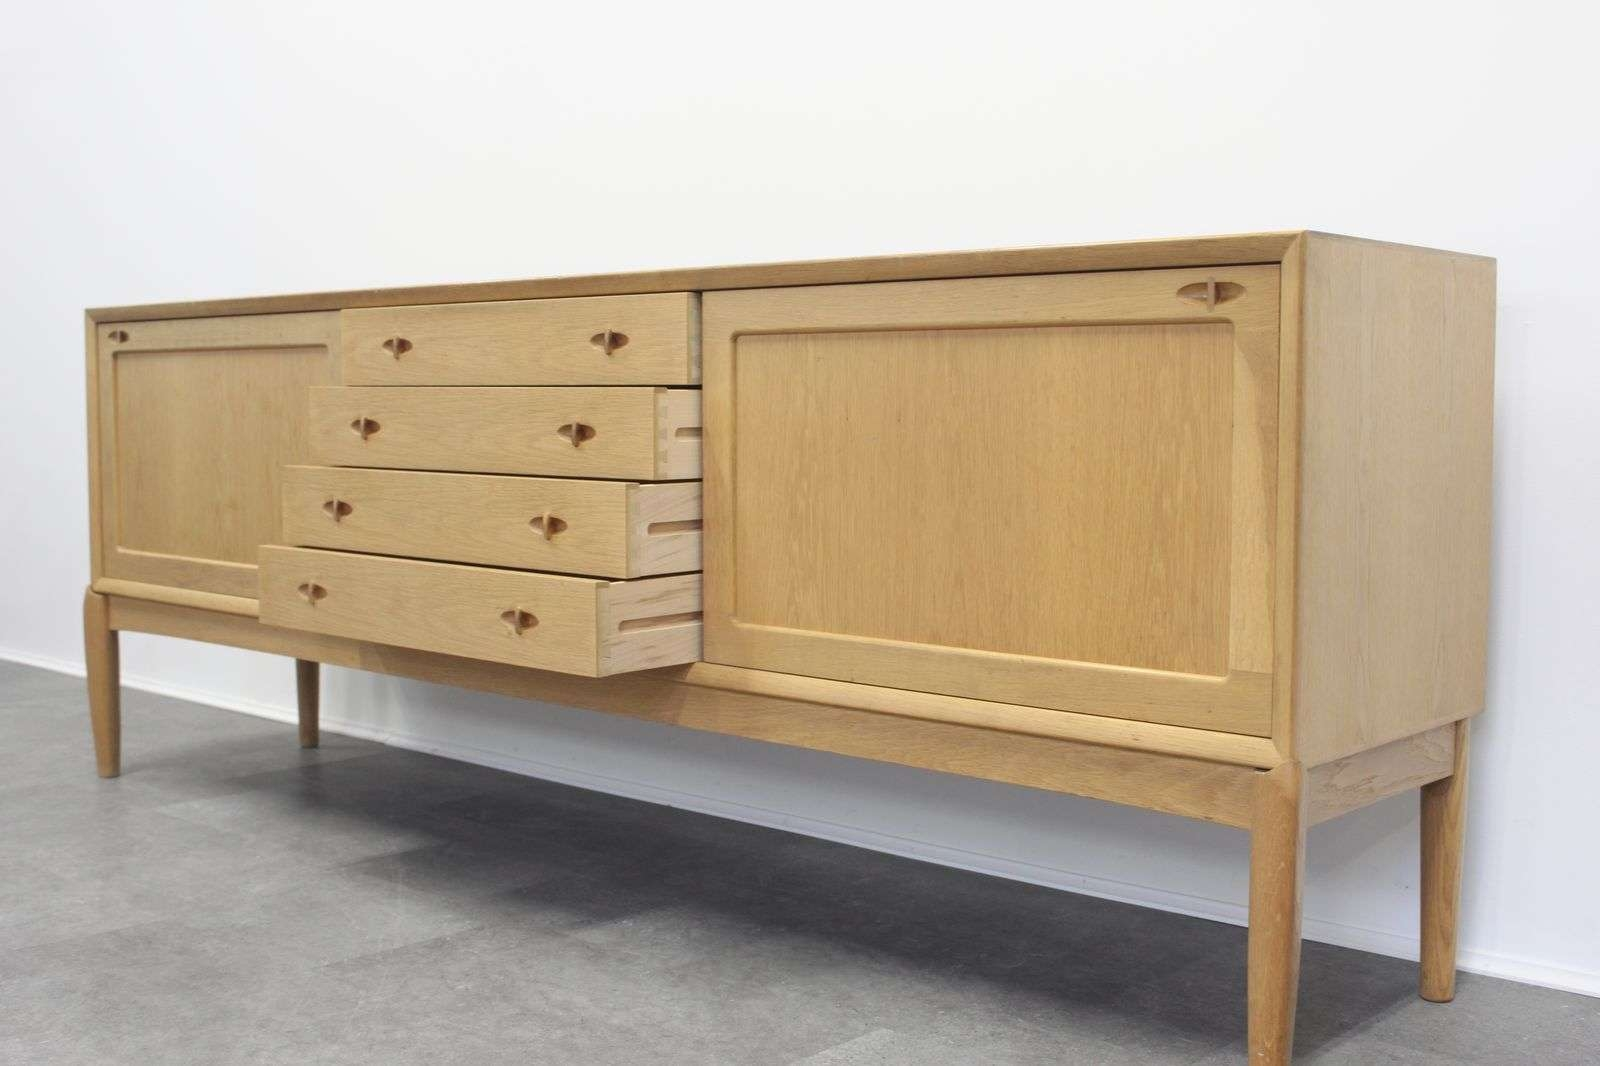 Vintage Oak Sideboardh.w. Klein For Bramin For Sale At Pamono In Antique Oak Sideboards (Gallery 6 of 20)